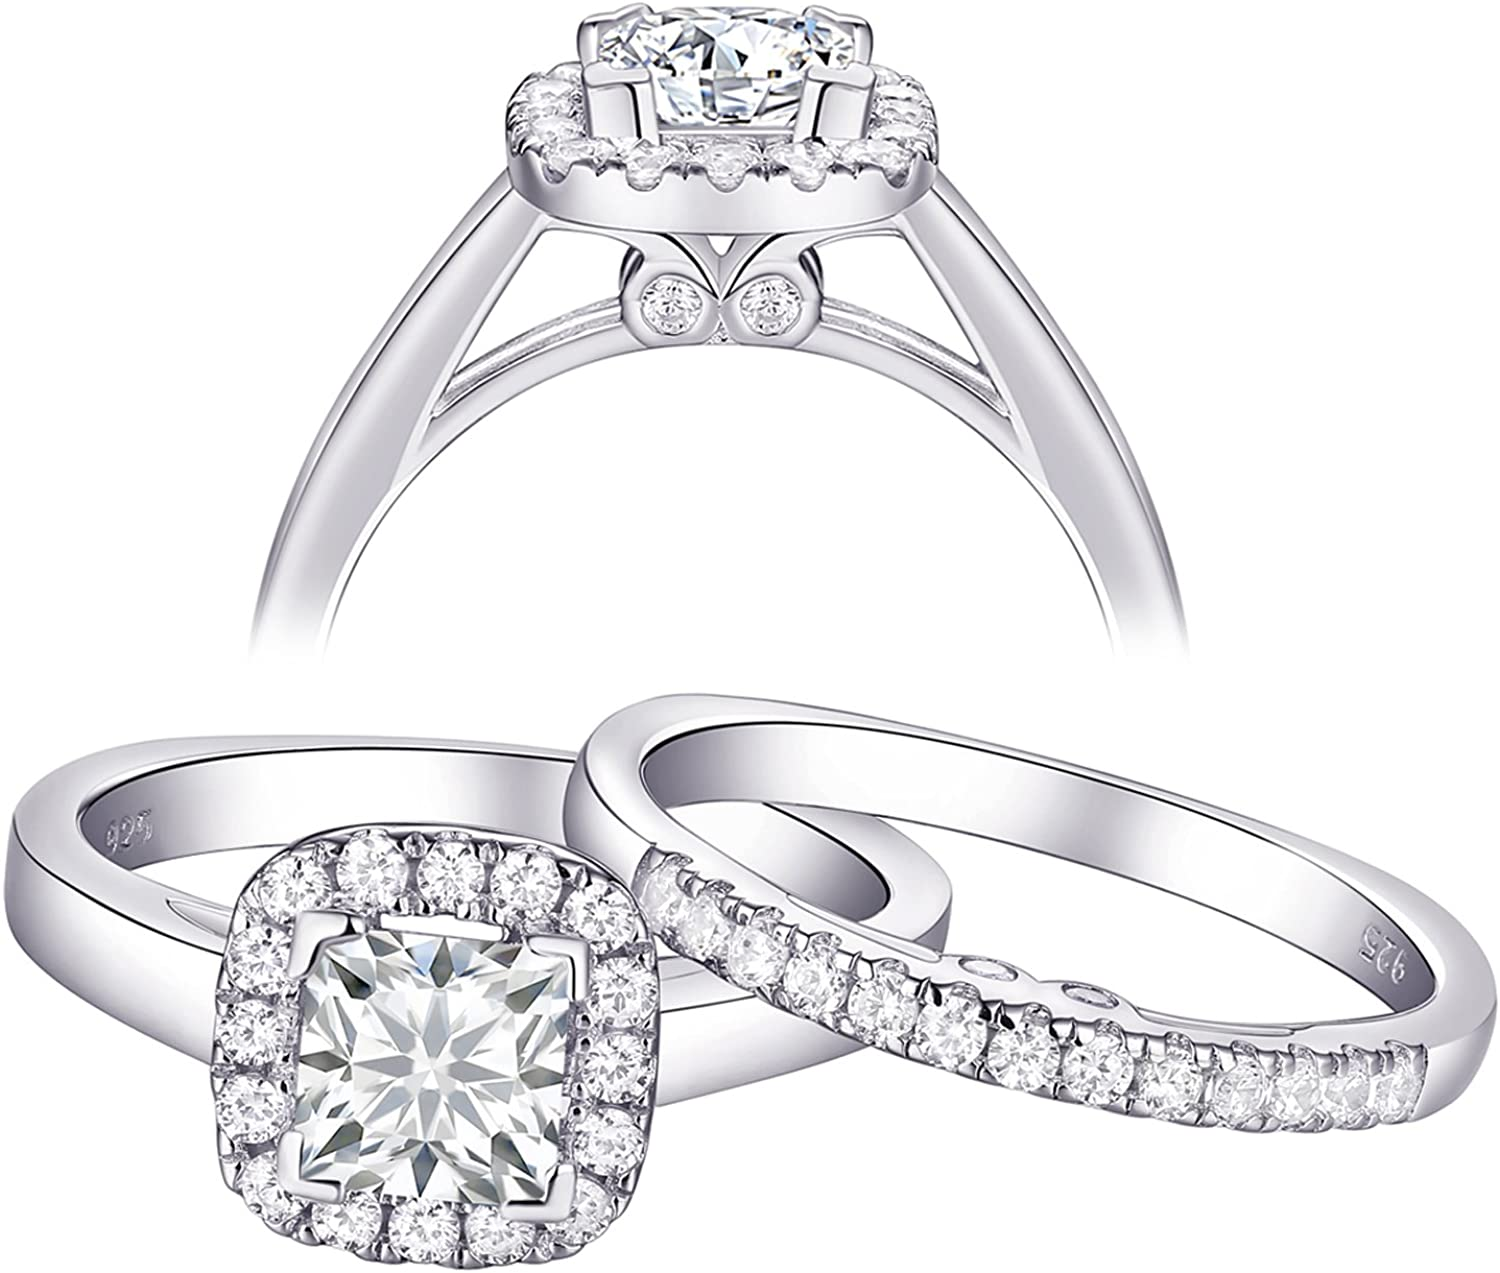 Newshe Size 10 Wedding Engagement Rings Sets for Women 925 Sterling Silver 0.9ct Cz Princess